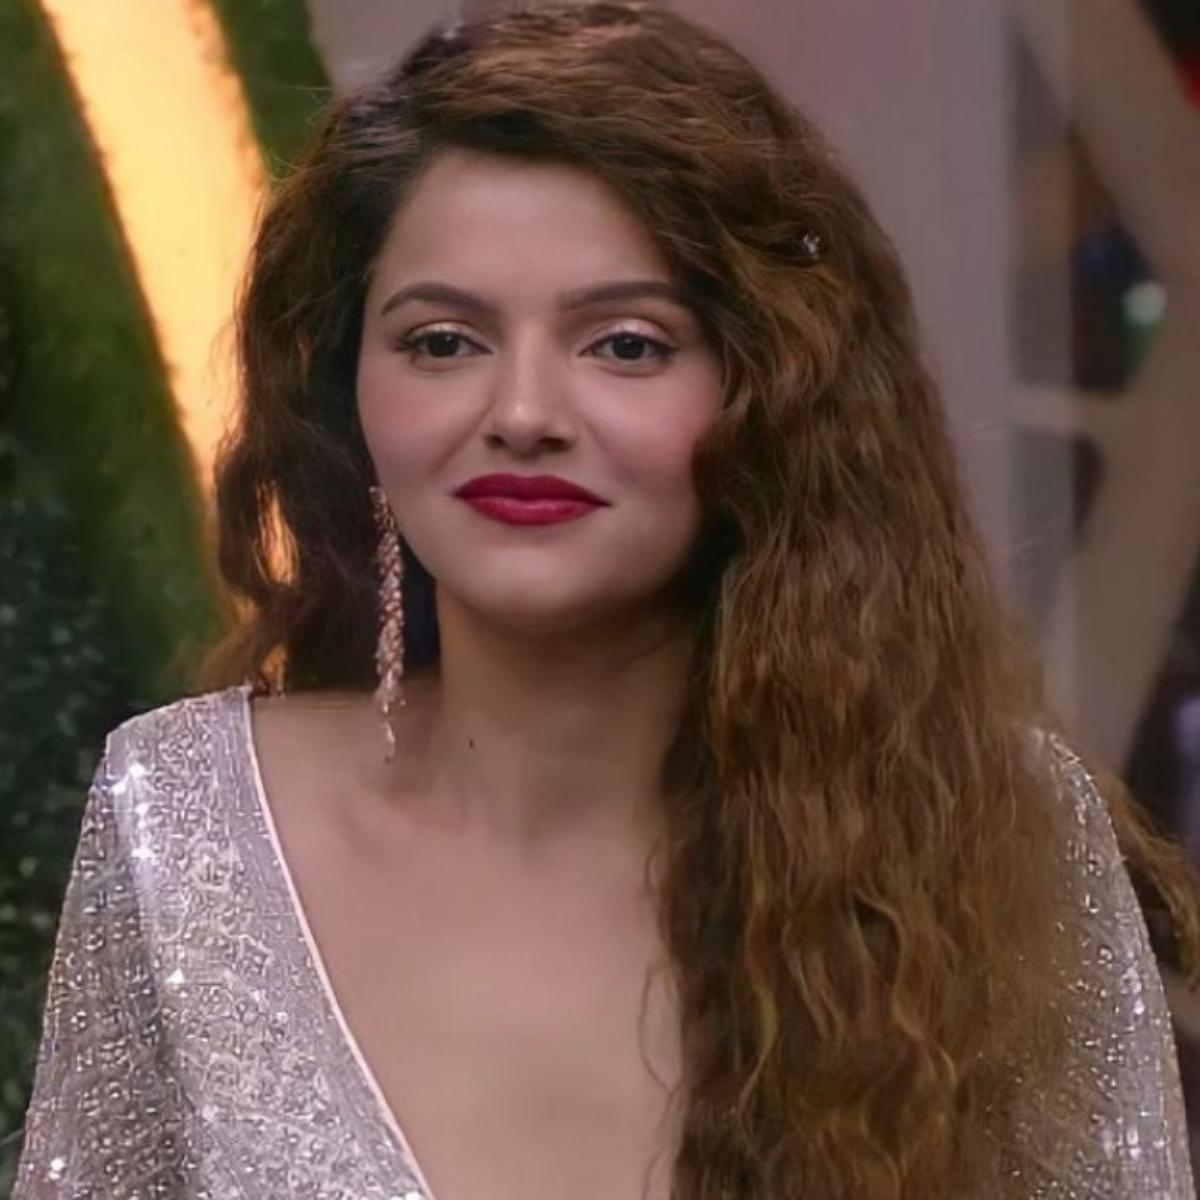 Rubina Dilaik's hairstyles from Bigg Boss 14